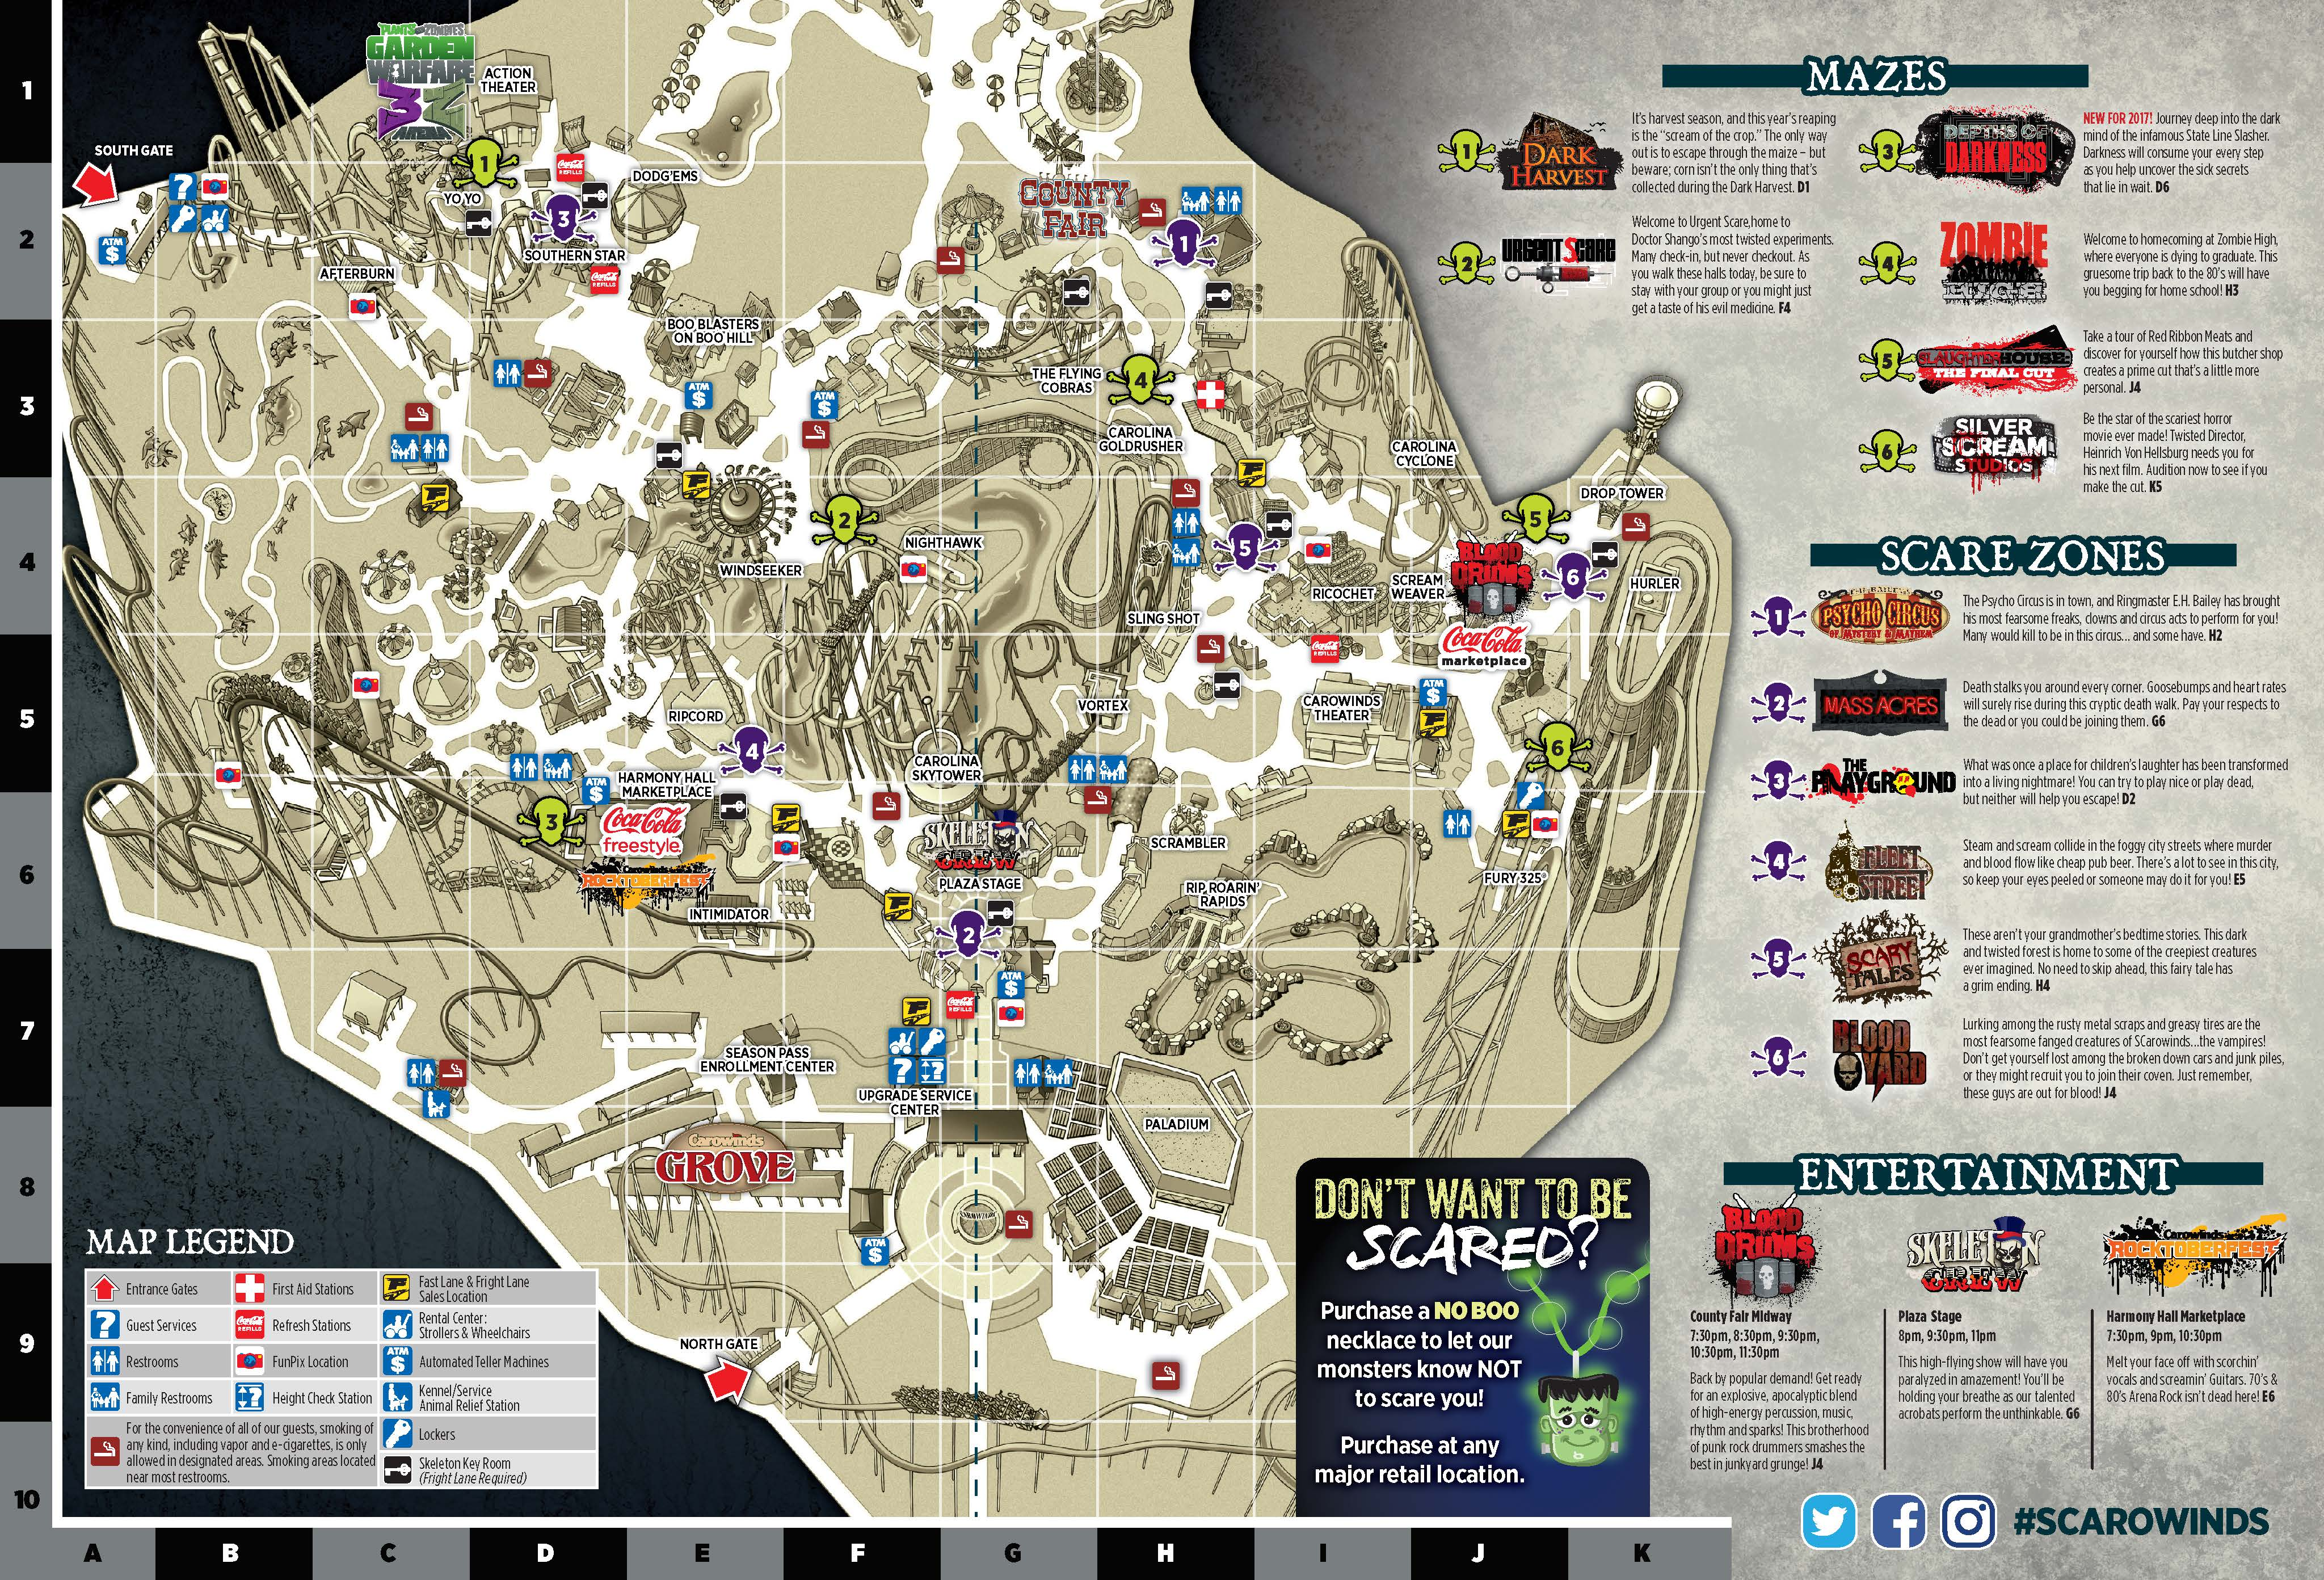 Top Five Things You Need to Know for SCarowinds - Carowinds Carowinds Map on